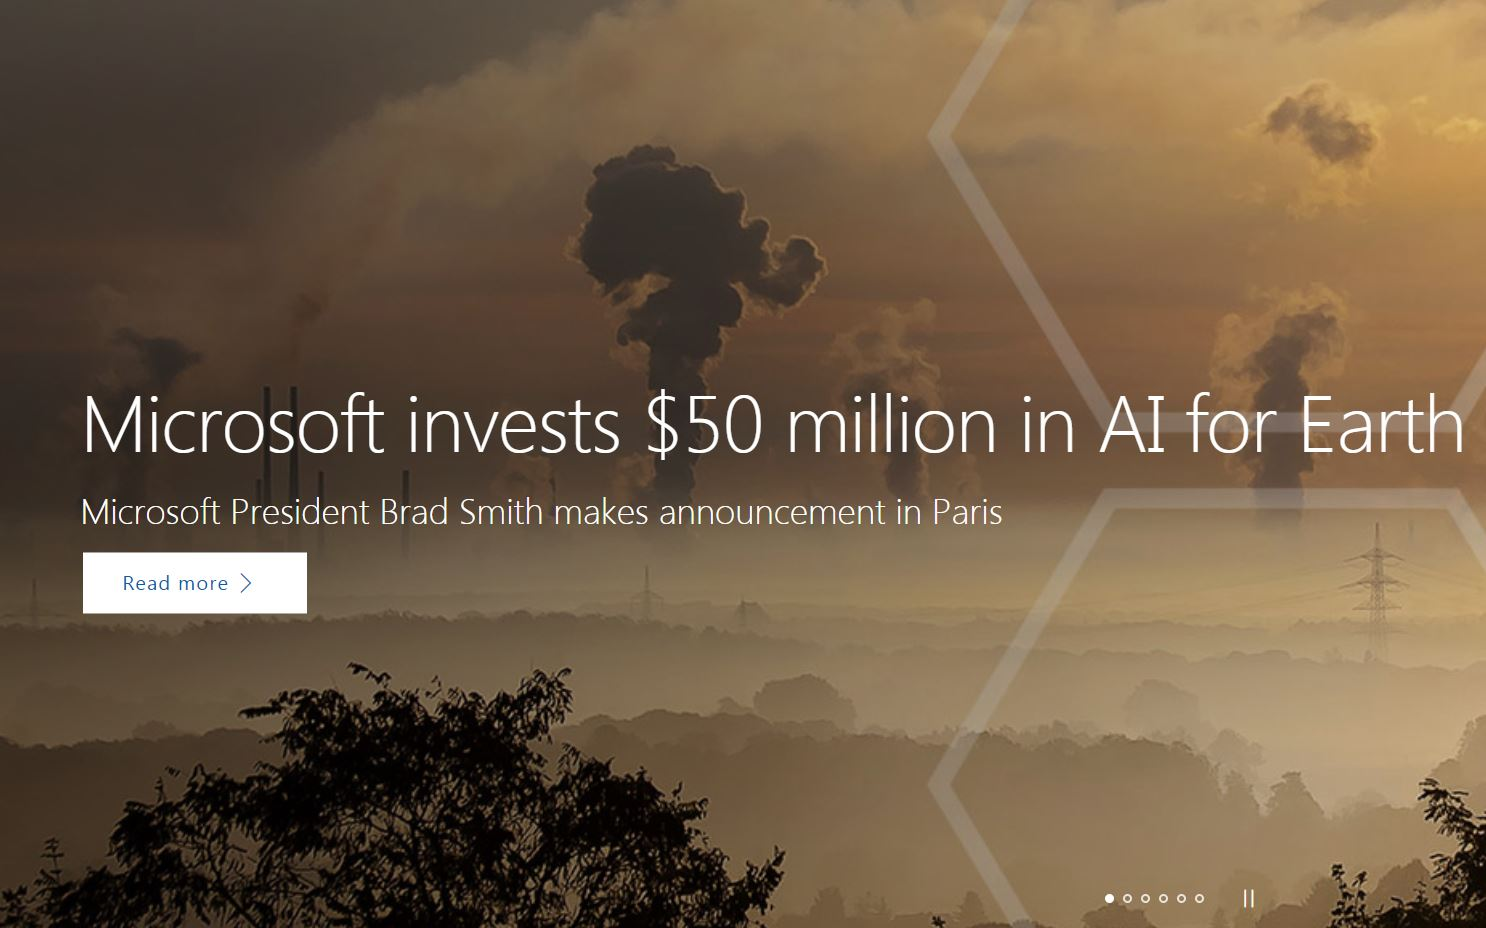 Microsoft Invests $50 Million in AI Climate Change Program